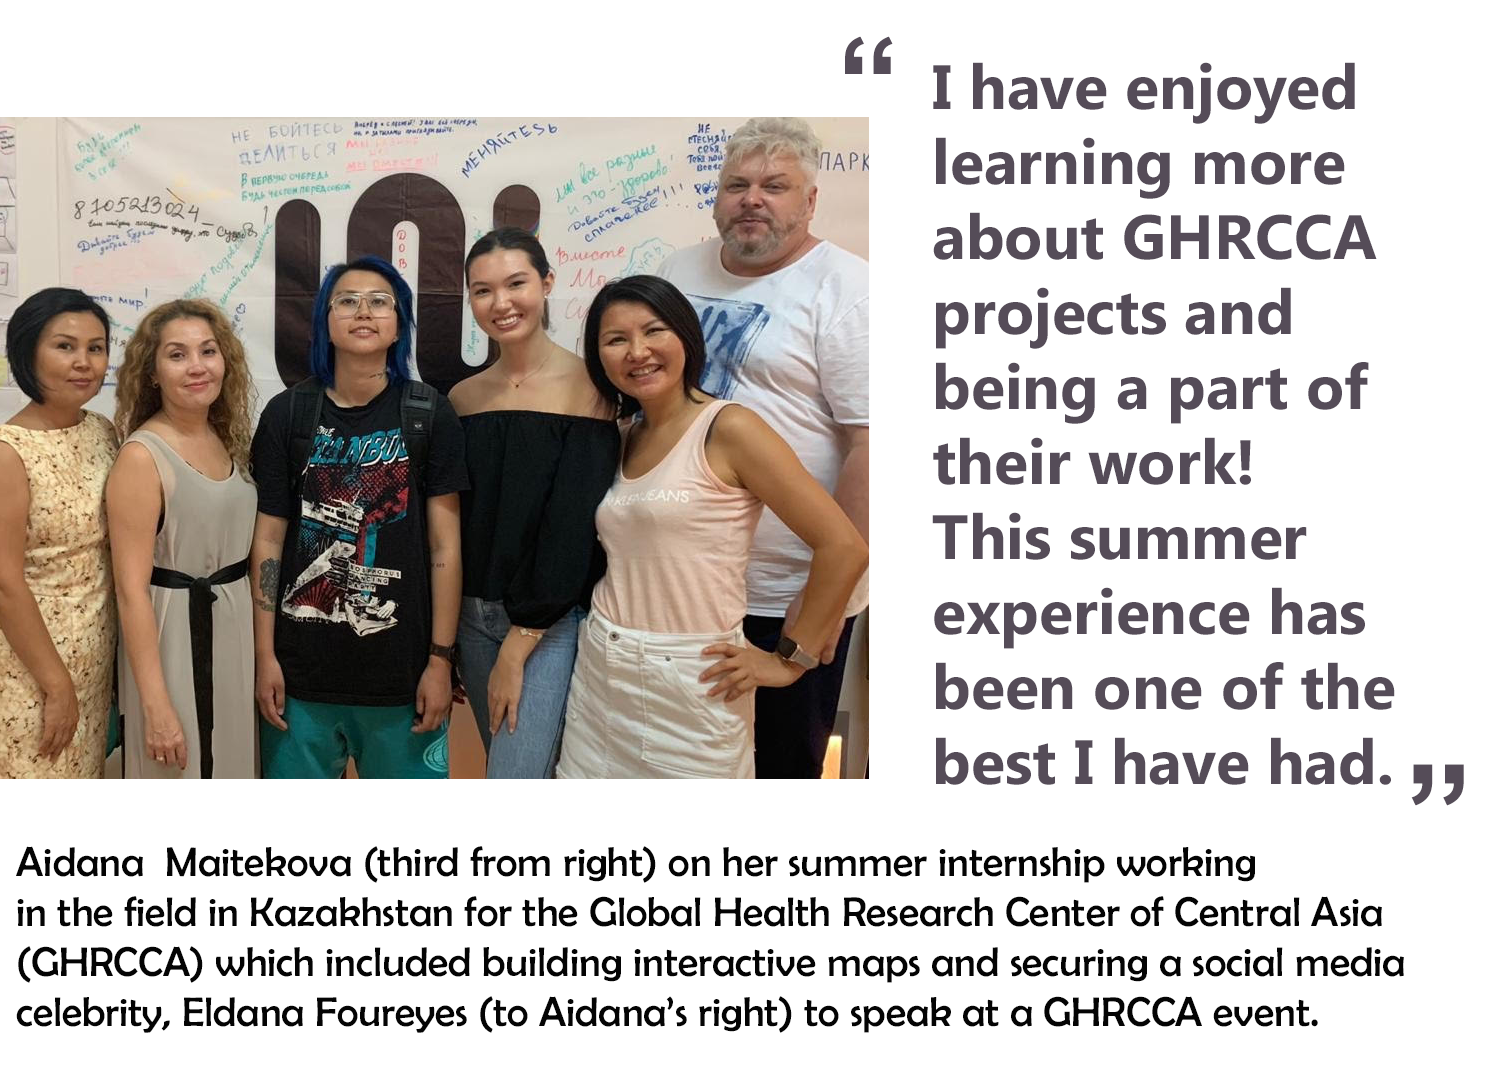 "Aidana with group and quote: """"I have enjoyed learning more about the projects in GHRCCA and being a part of their work! This summer experience has been one the best I have had."""